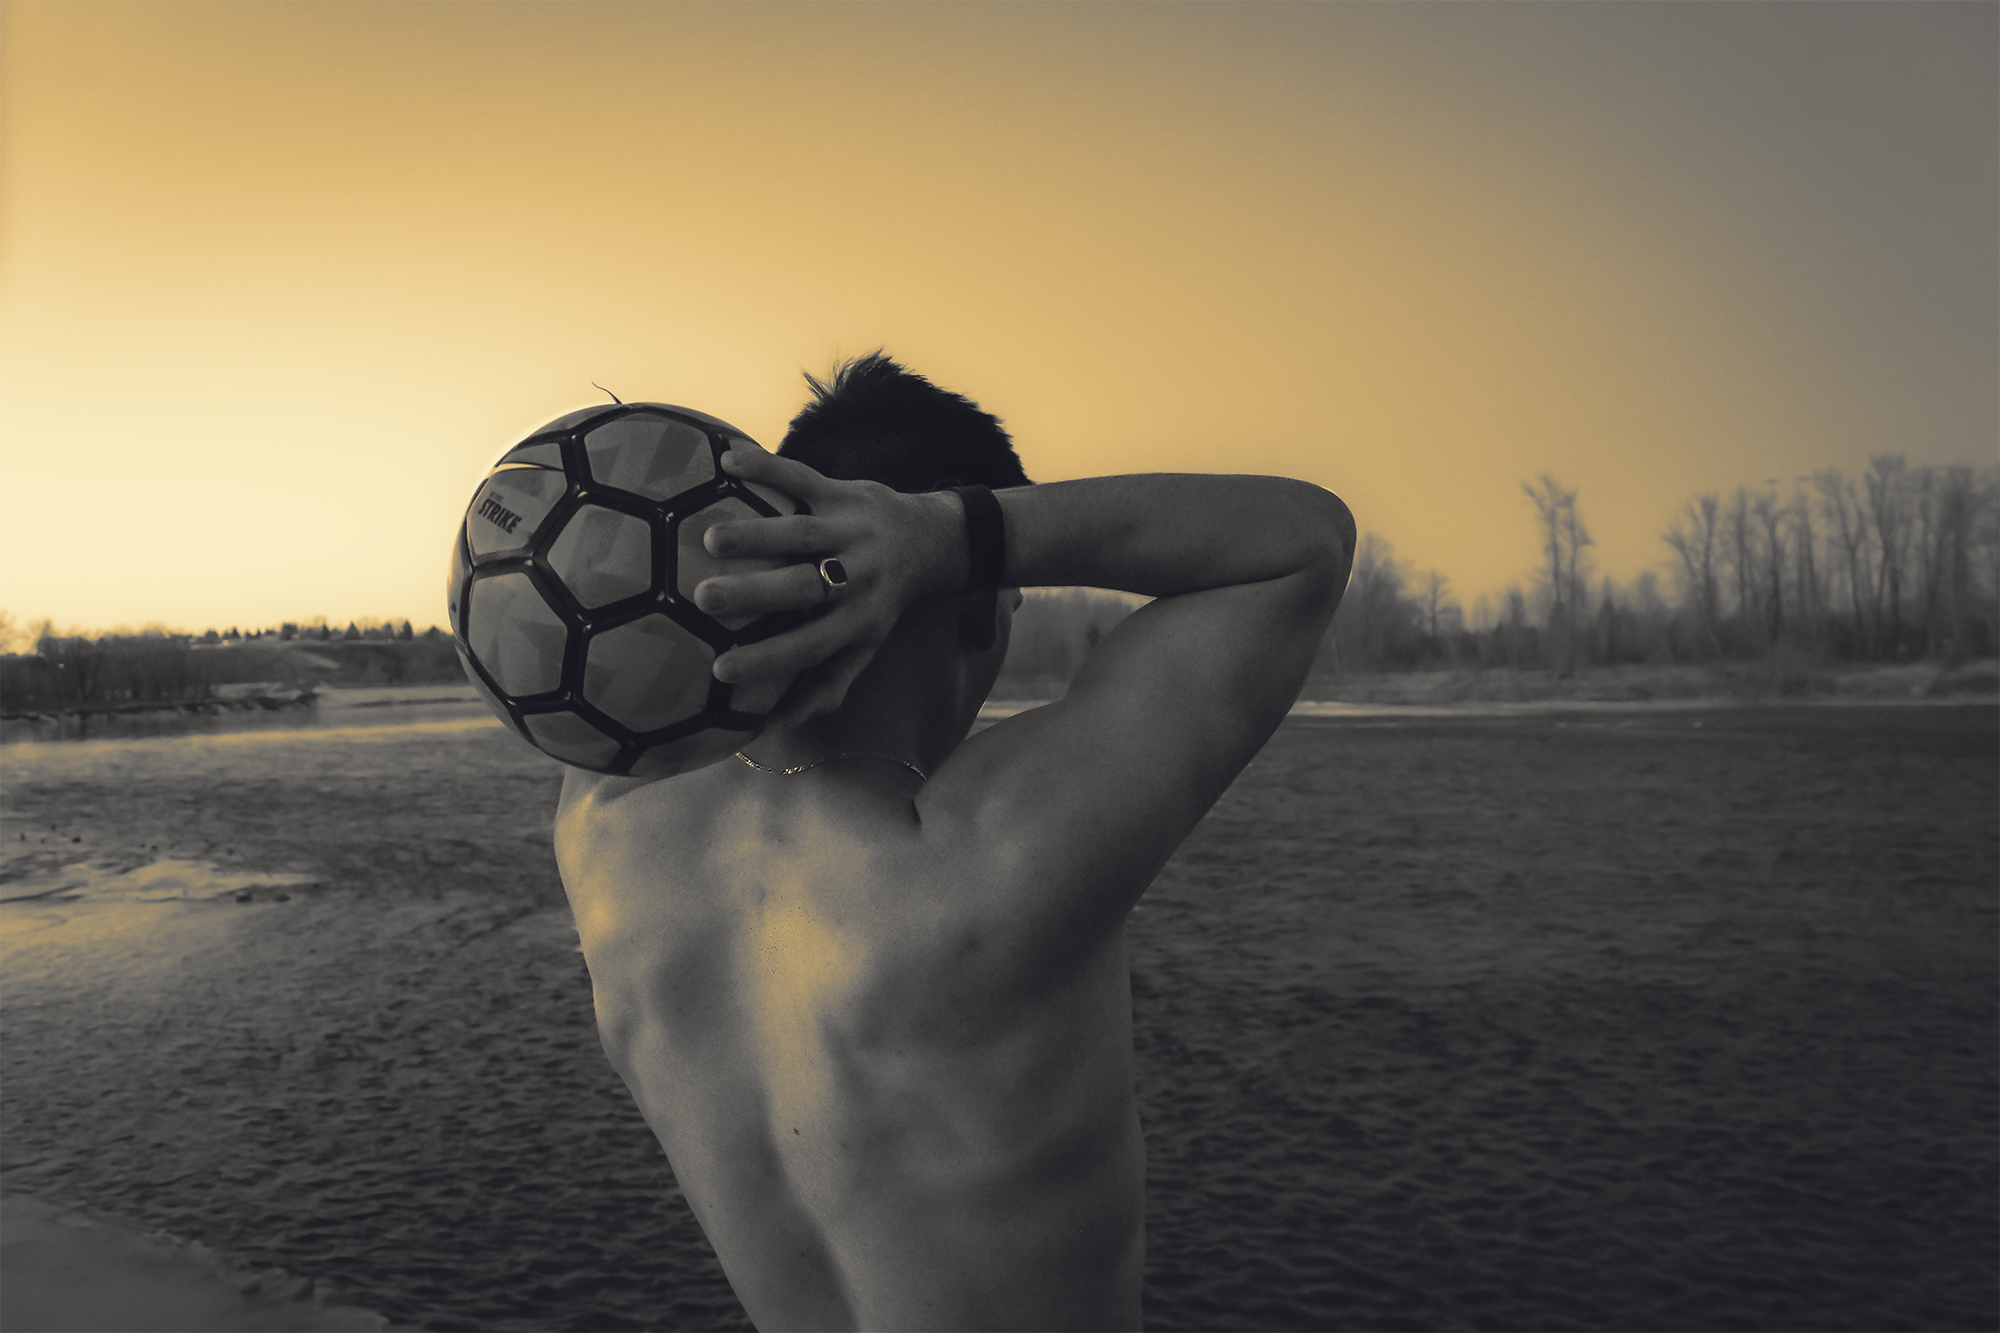 River with man throwing soccer ball